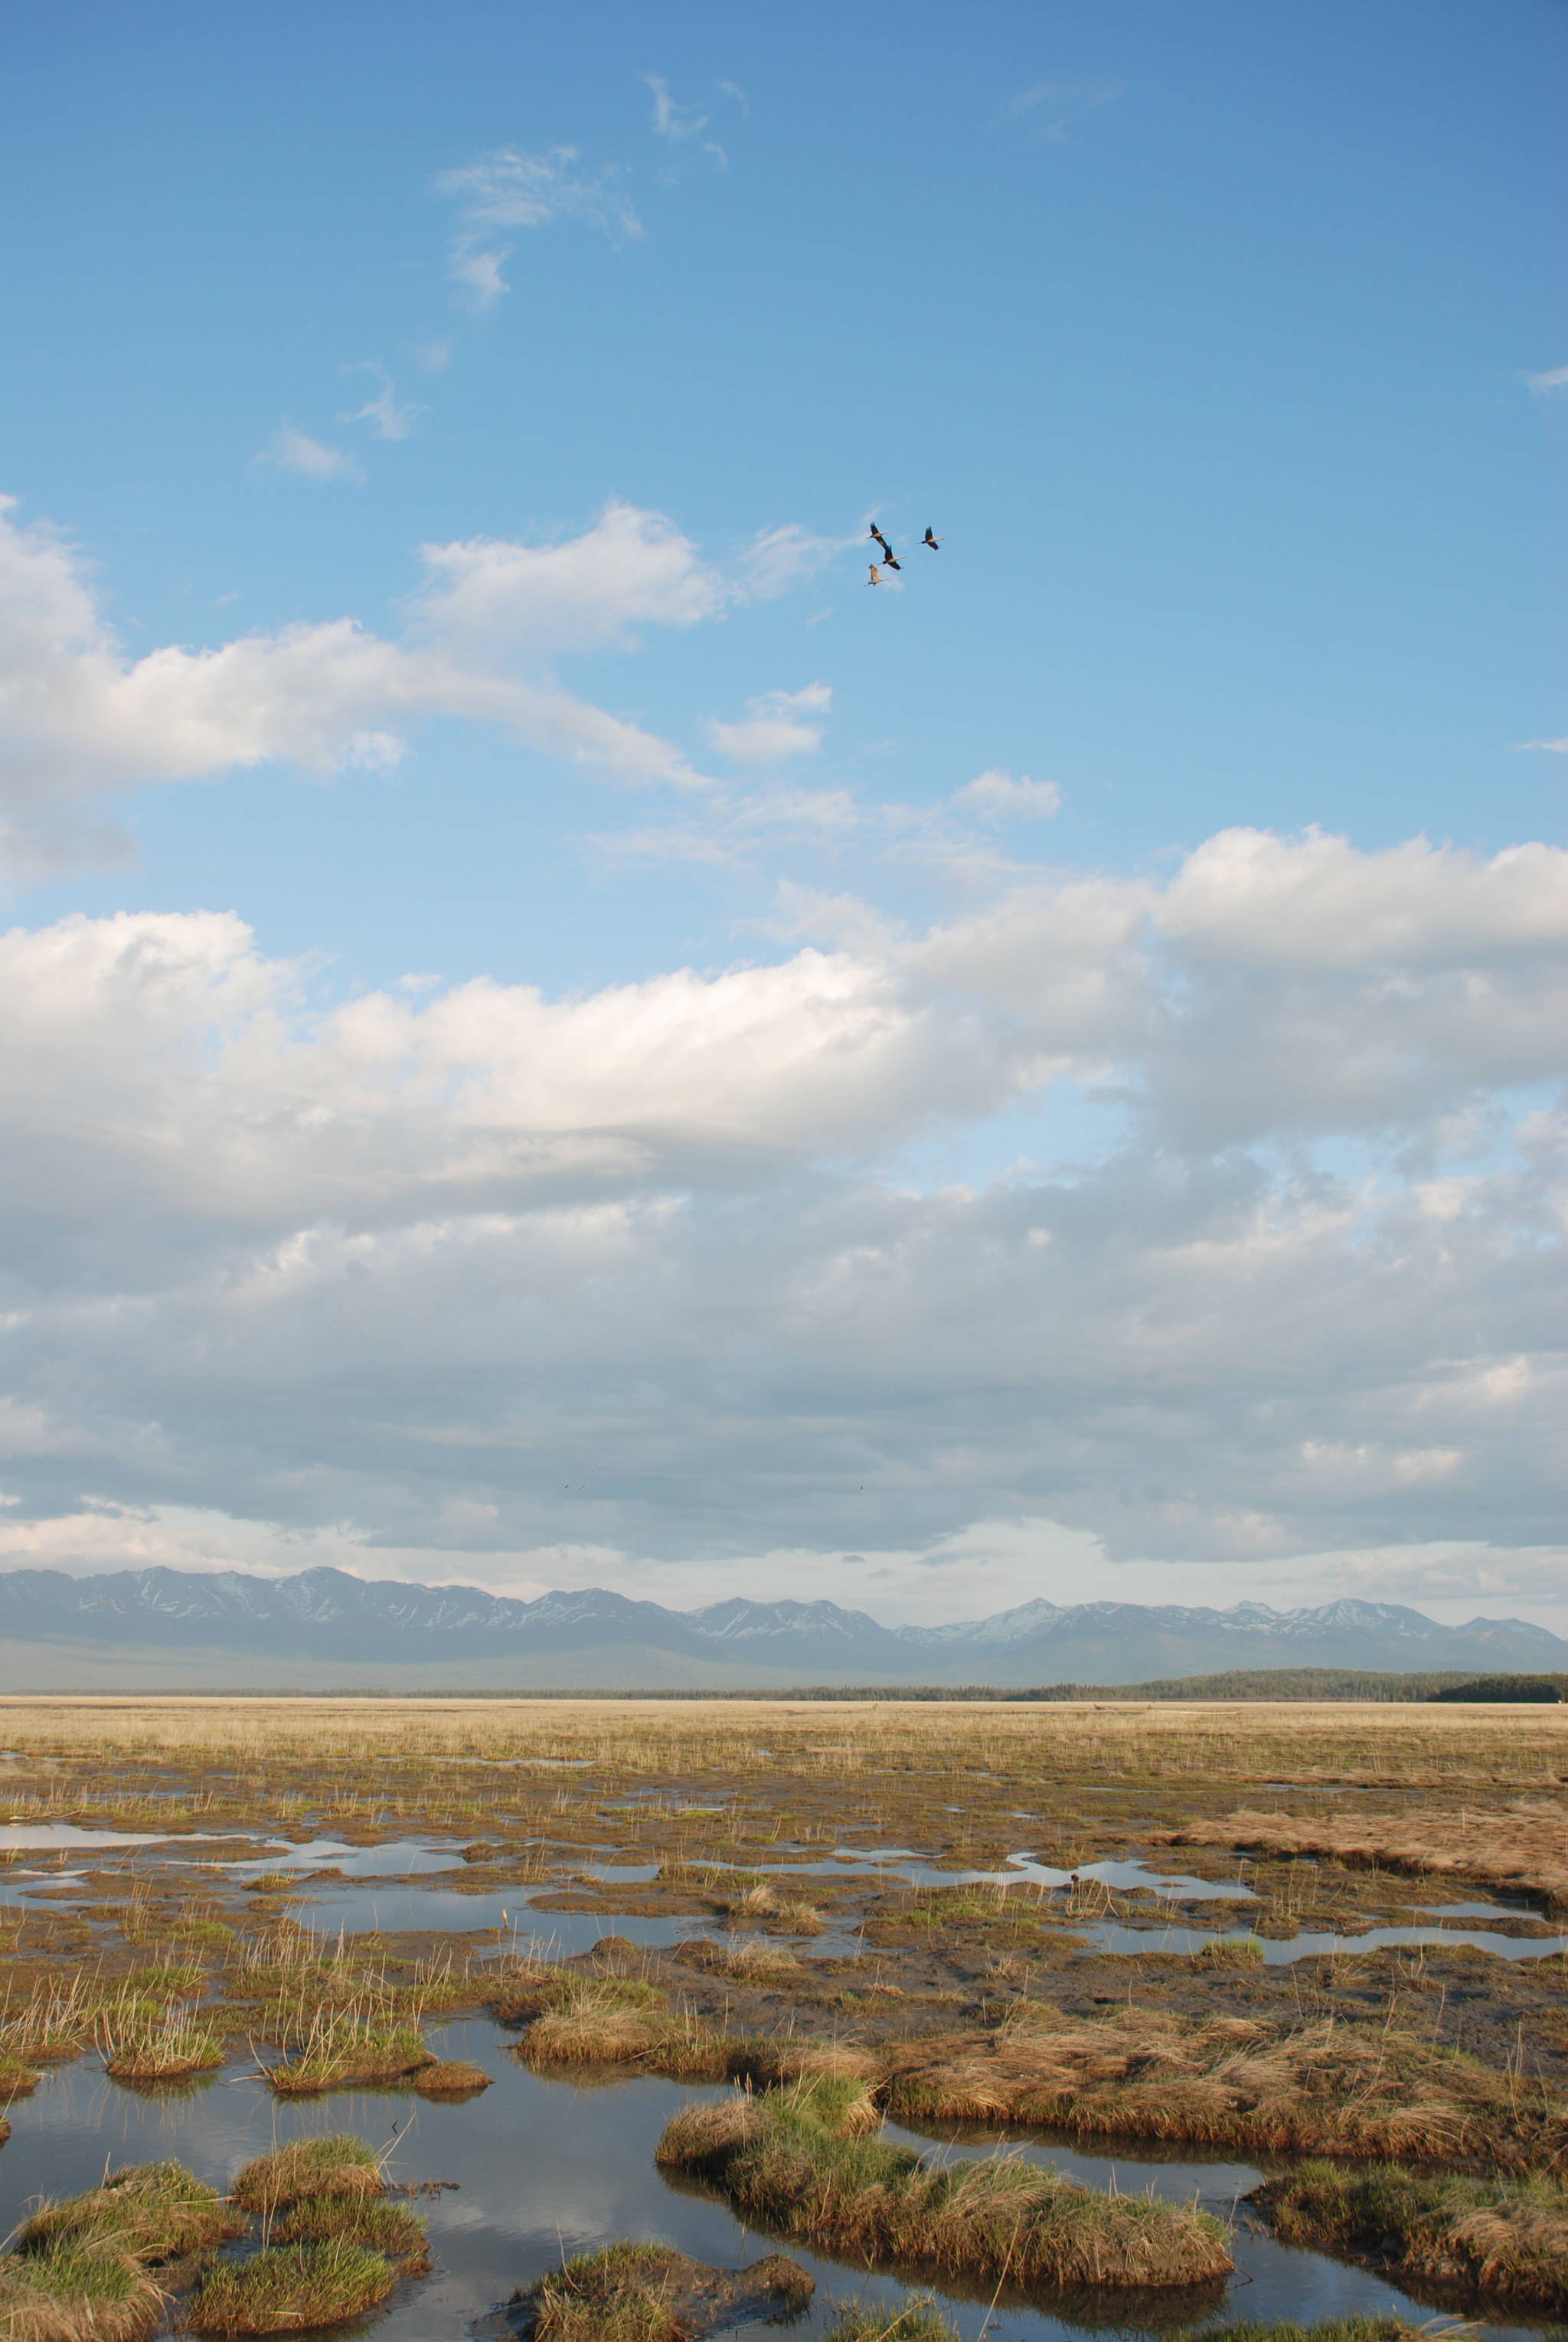 Sandhill cranes fly over salt-tolerant vegetation that is expanding on a slightly tilting but rising Chickaloon Flats decades after the 1964 Good Friday Earthquake. (Photo by John Morton/Kenai National Wildlife Refuge)